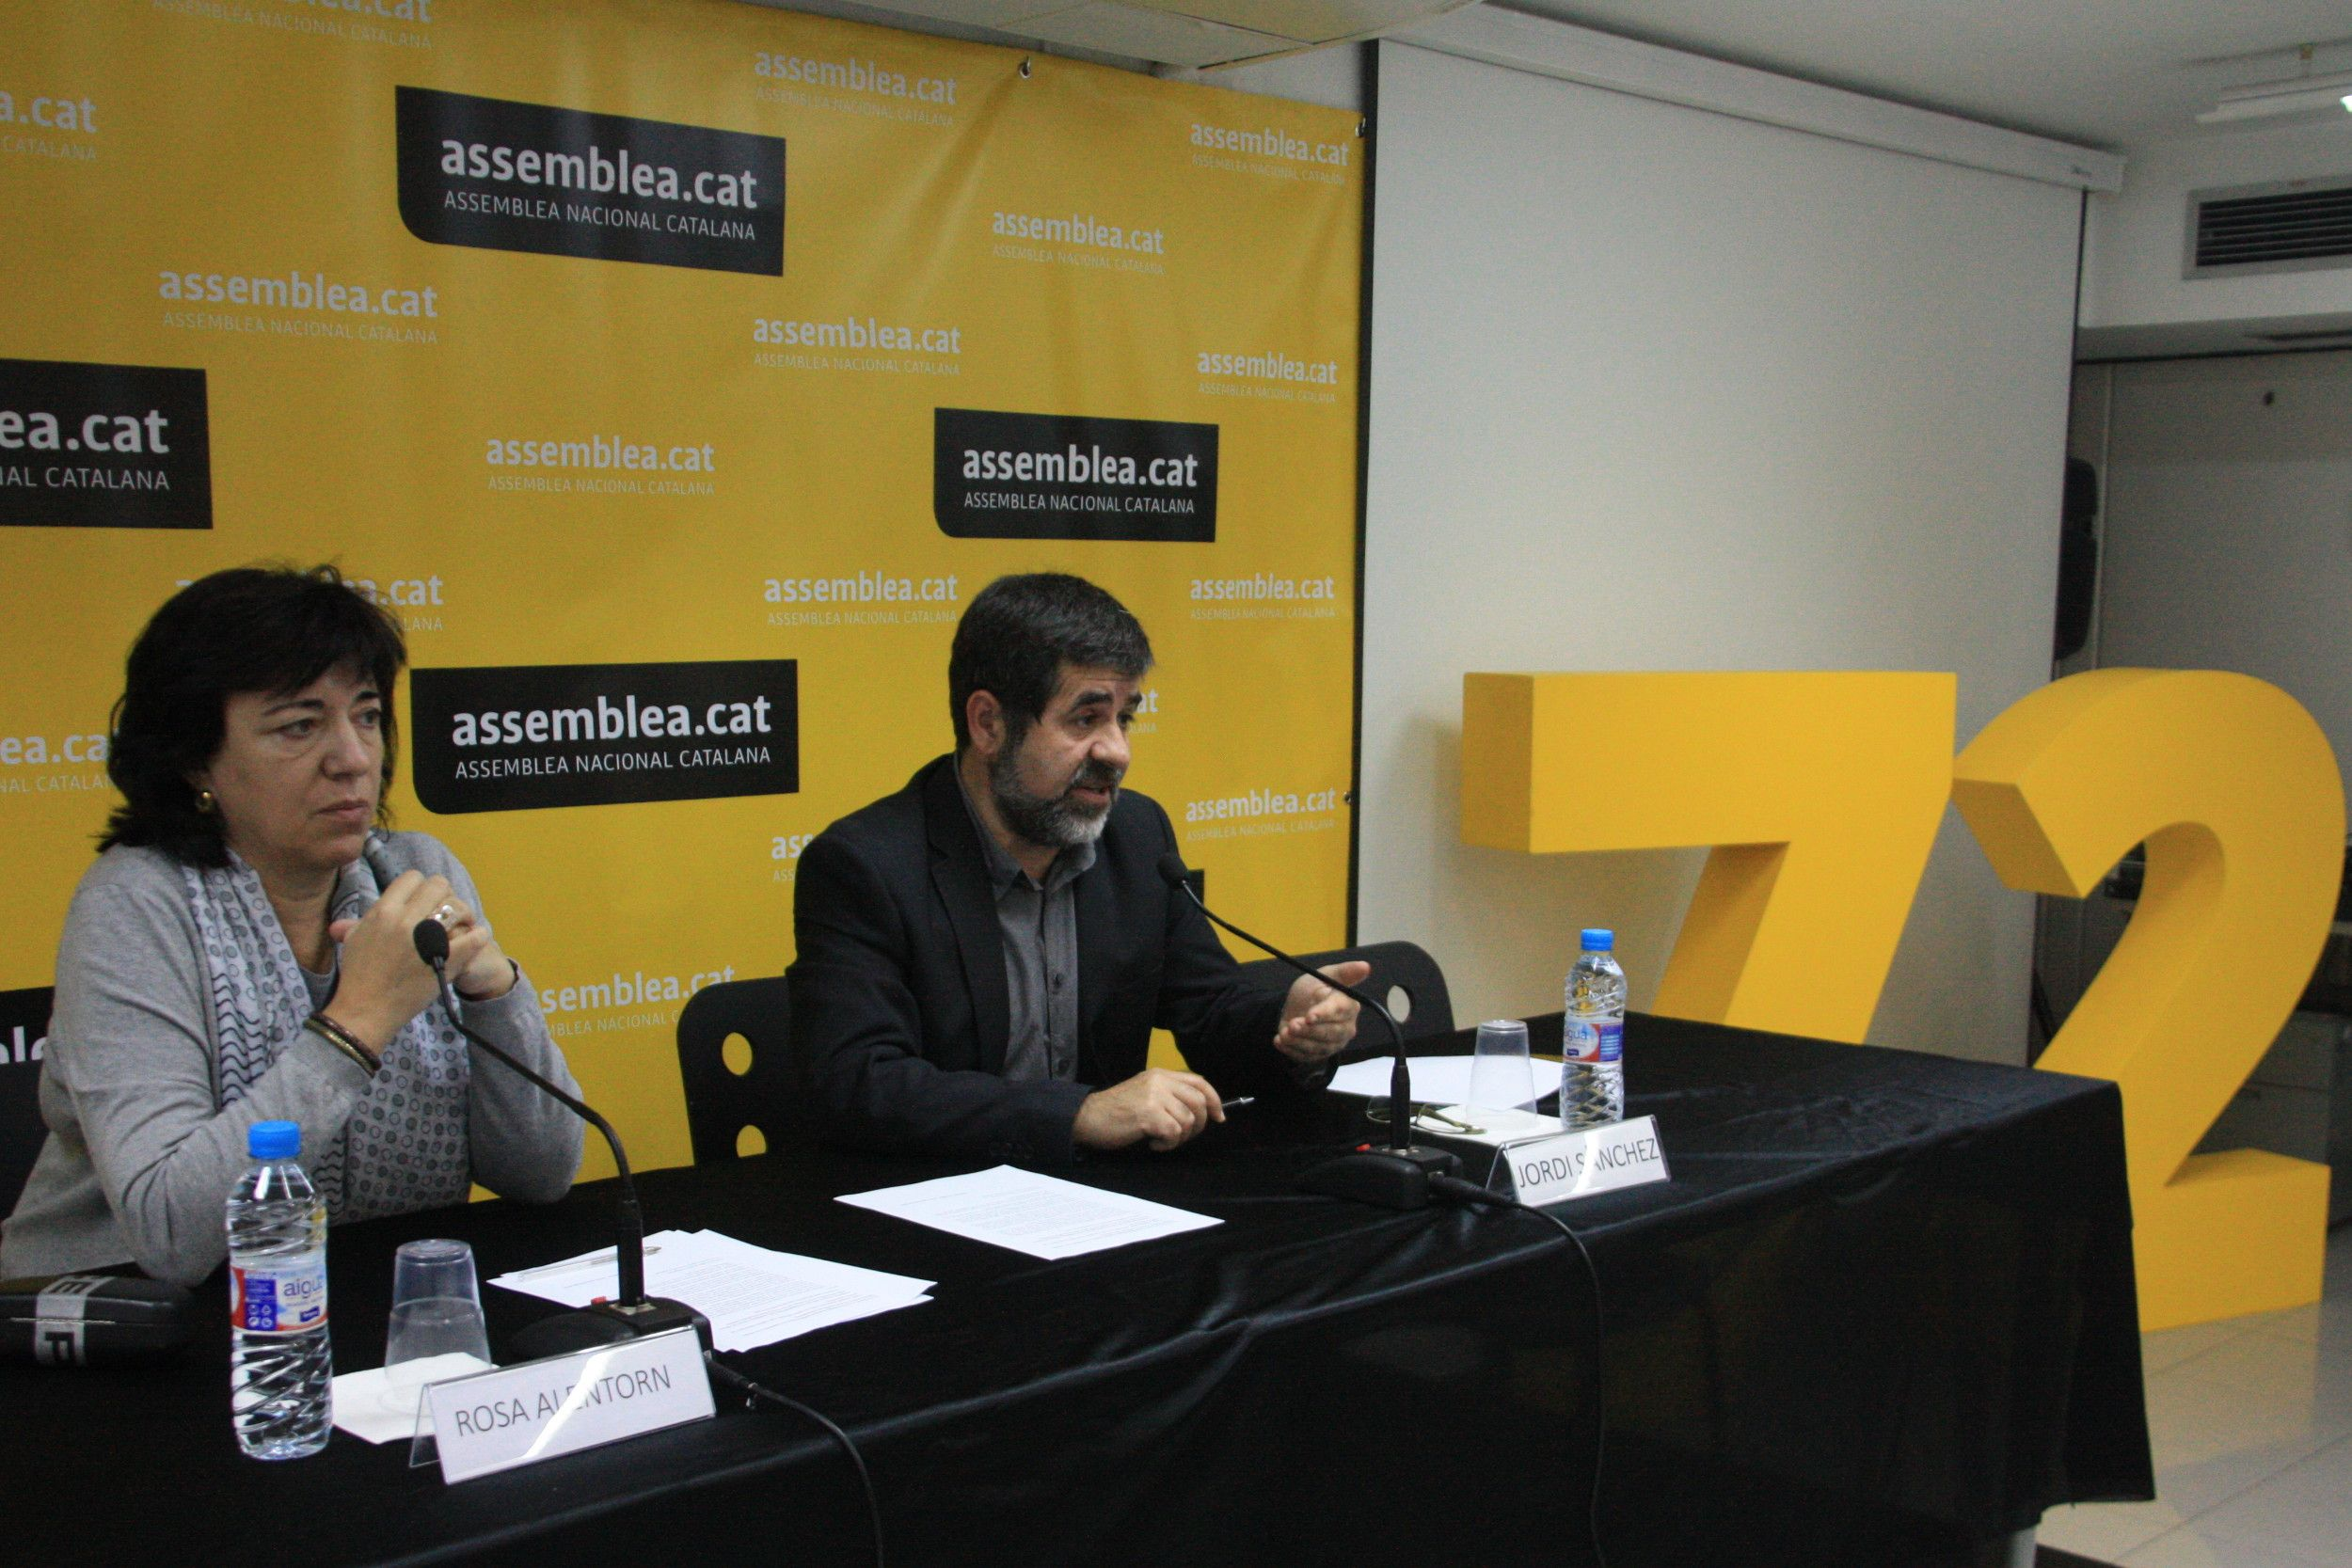 ANC urges pro-independence forces to reach an agreement by the 27th of November - catalannewsagency.com, 16 November 2015